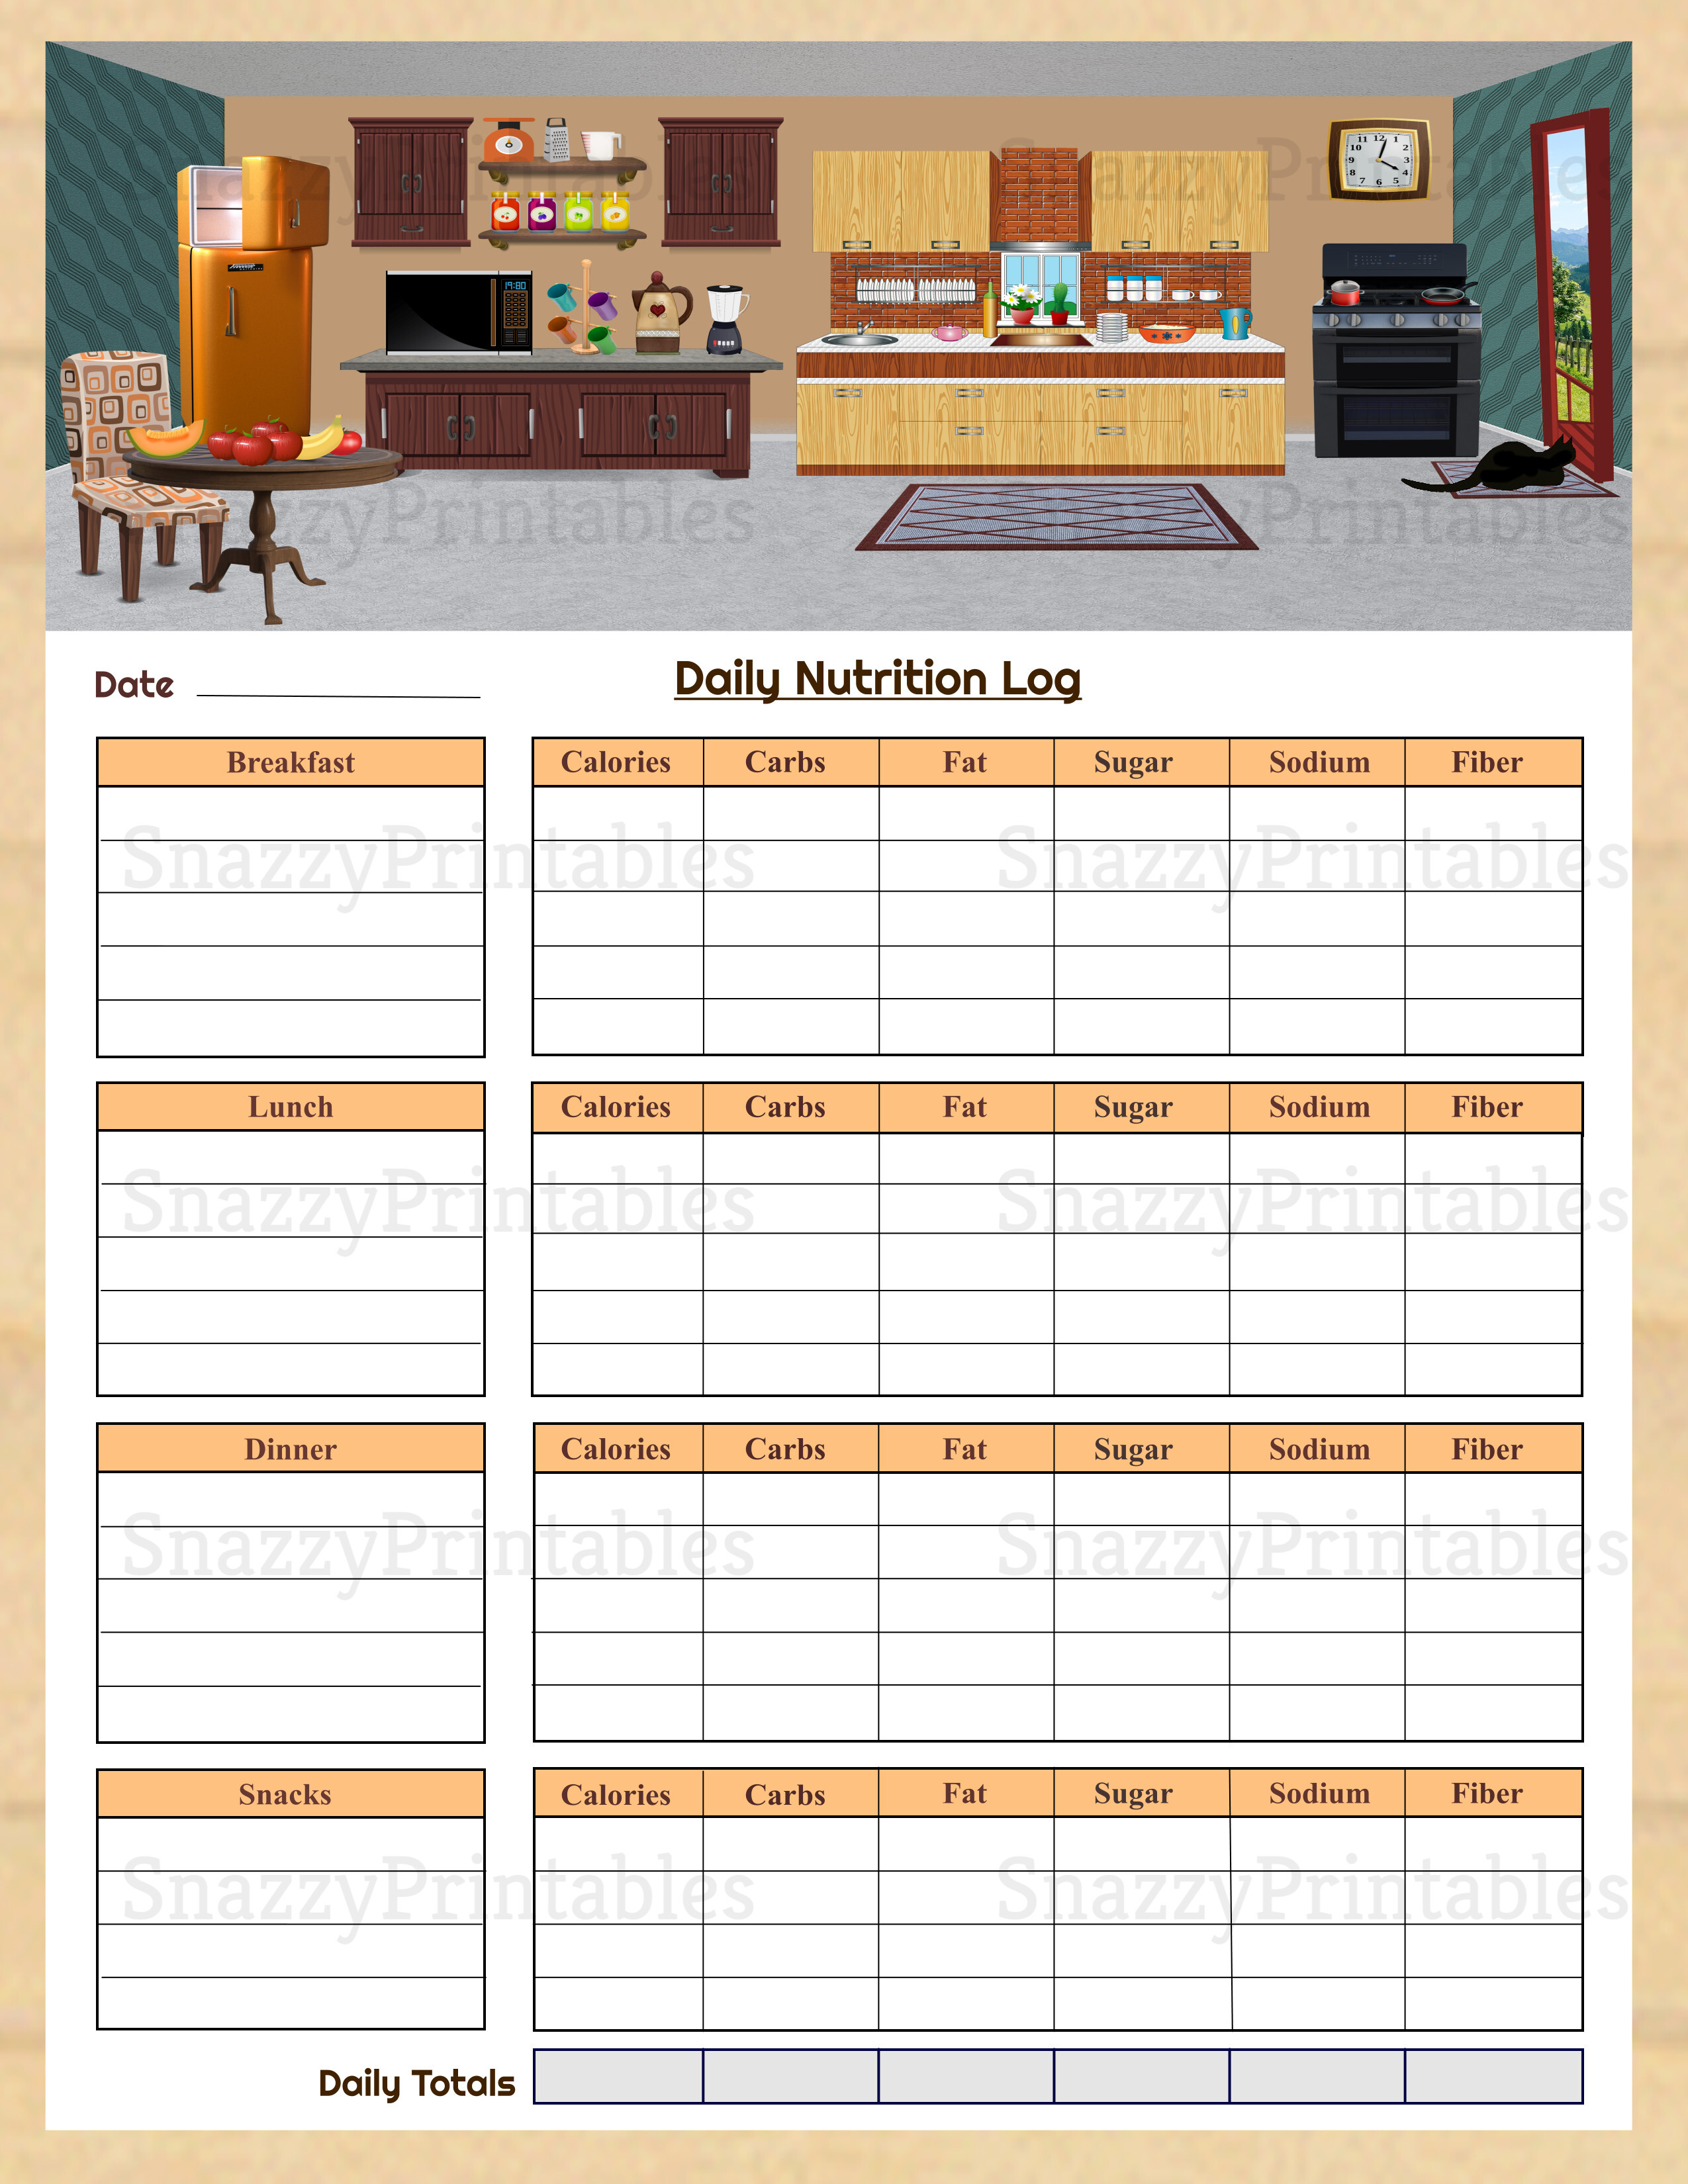 Daily Nutrition Log Printable - Instant Download PDF